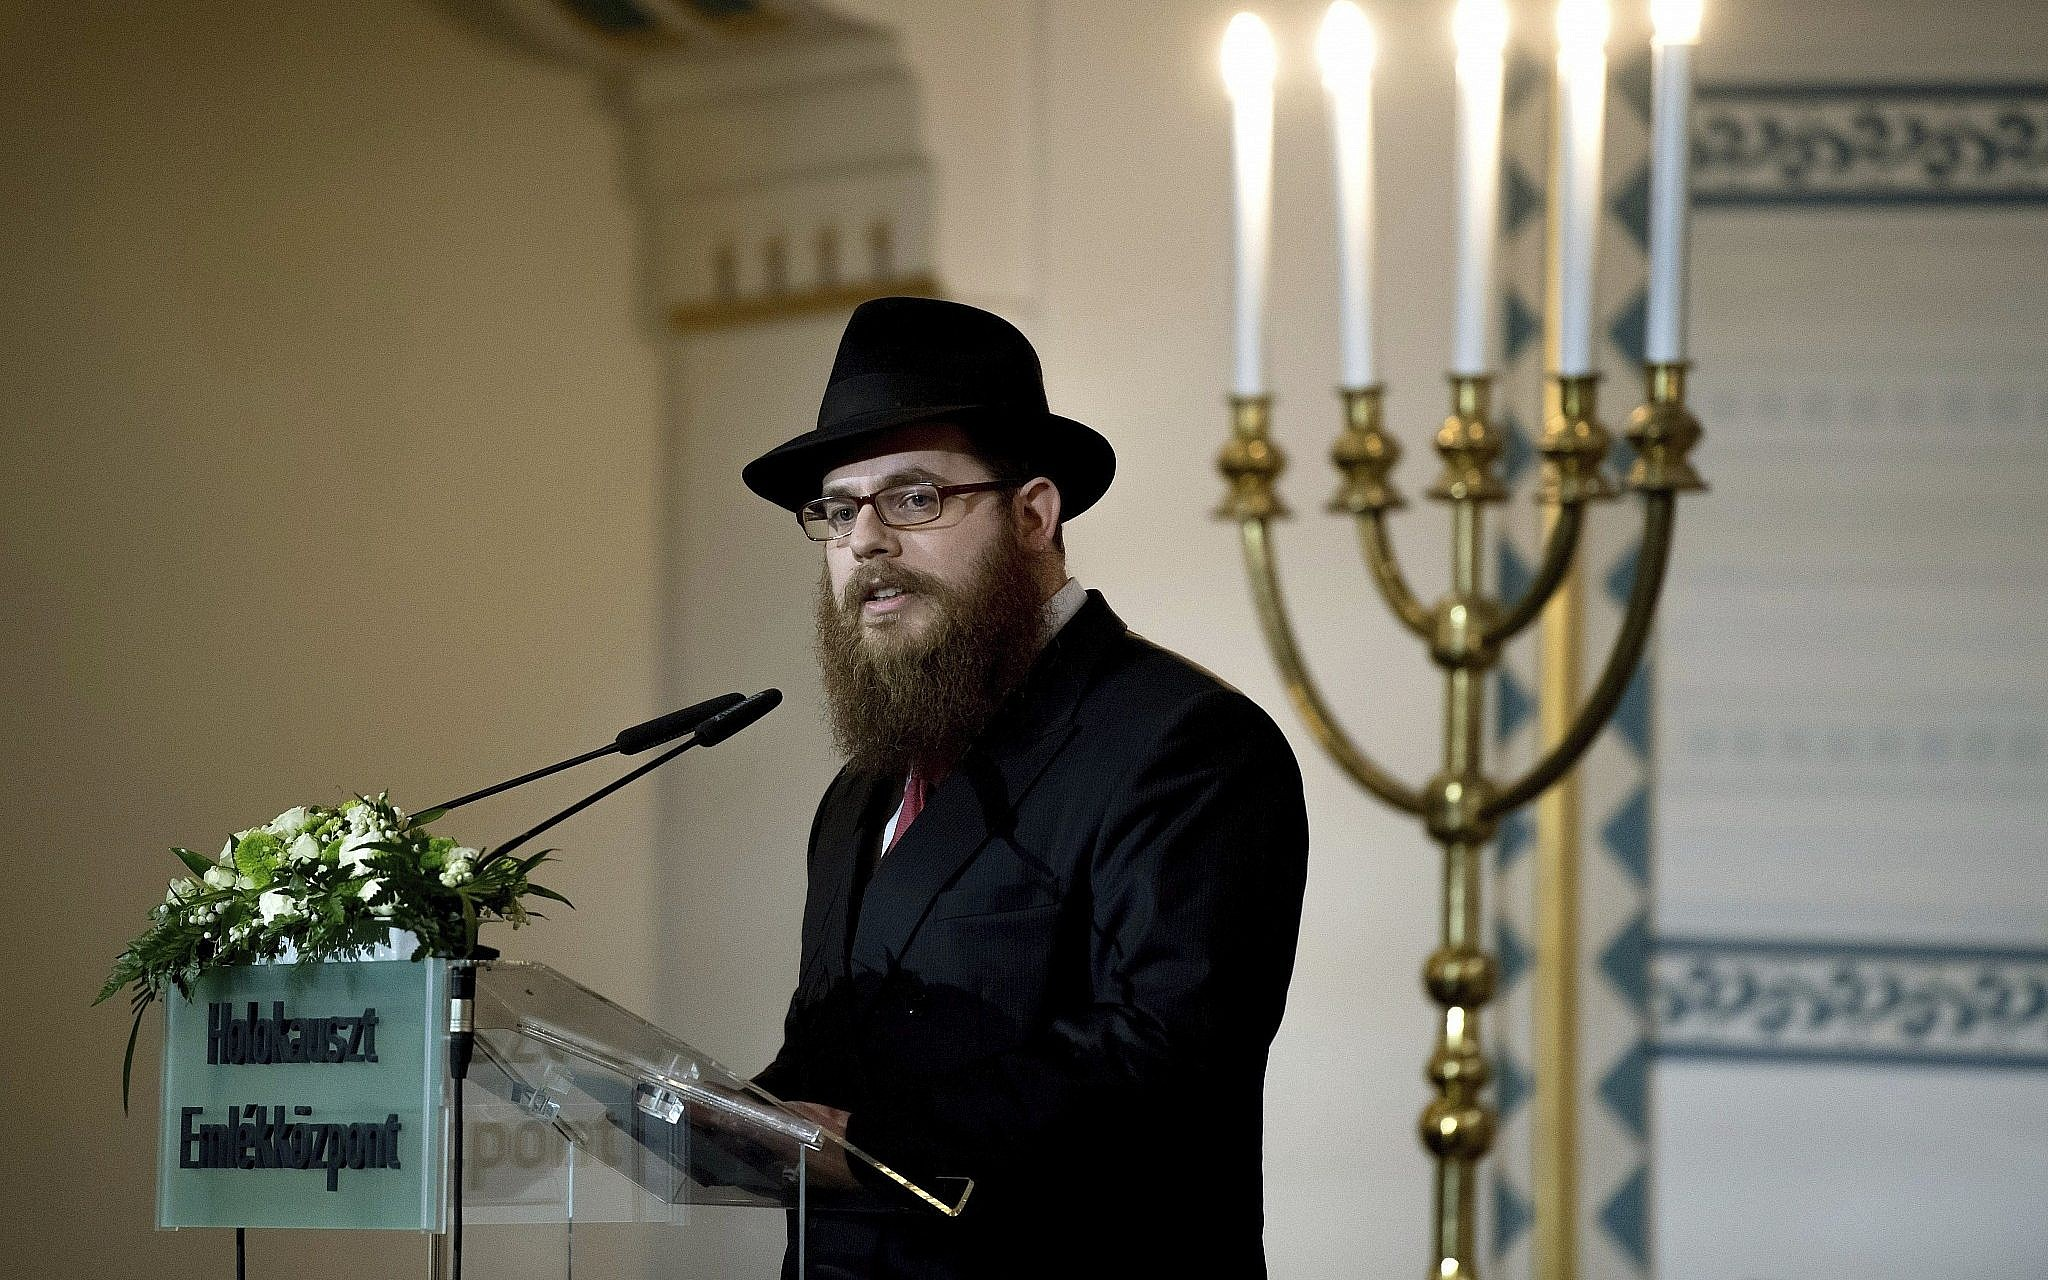 Slomo Koves, chief rabbi of the Chabad-affiliated Unified Israelite Congregation of Hungary (EMIH), speaks during a commemoration marking the Memorial Day of the Hungarian Holocaust victims in the Holocaust Memorial Center in Budapest, Hungary, on April 19, 2017. (Szilard Koszticsak/MTI via AP)